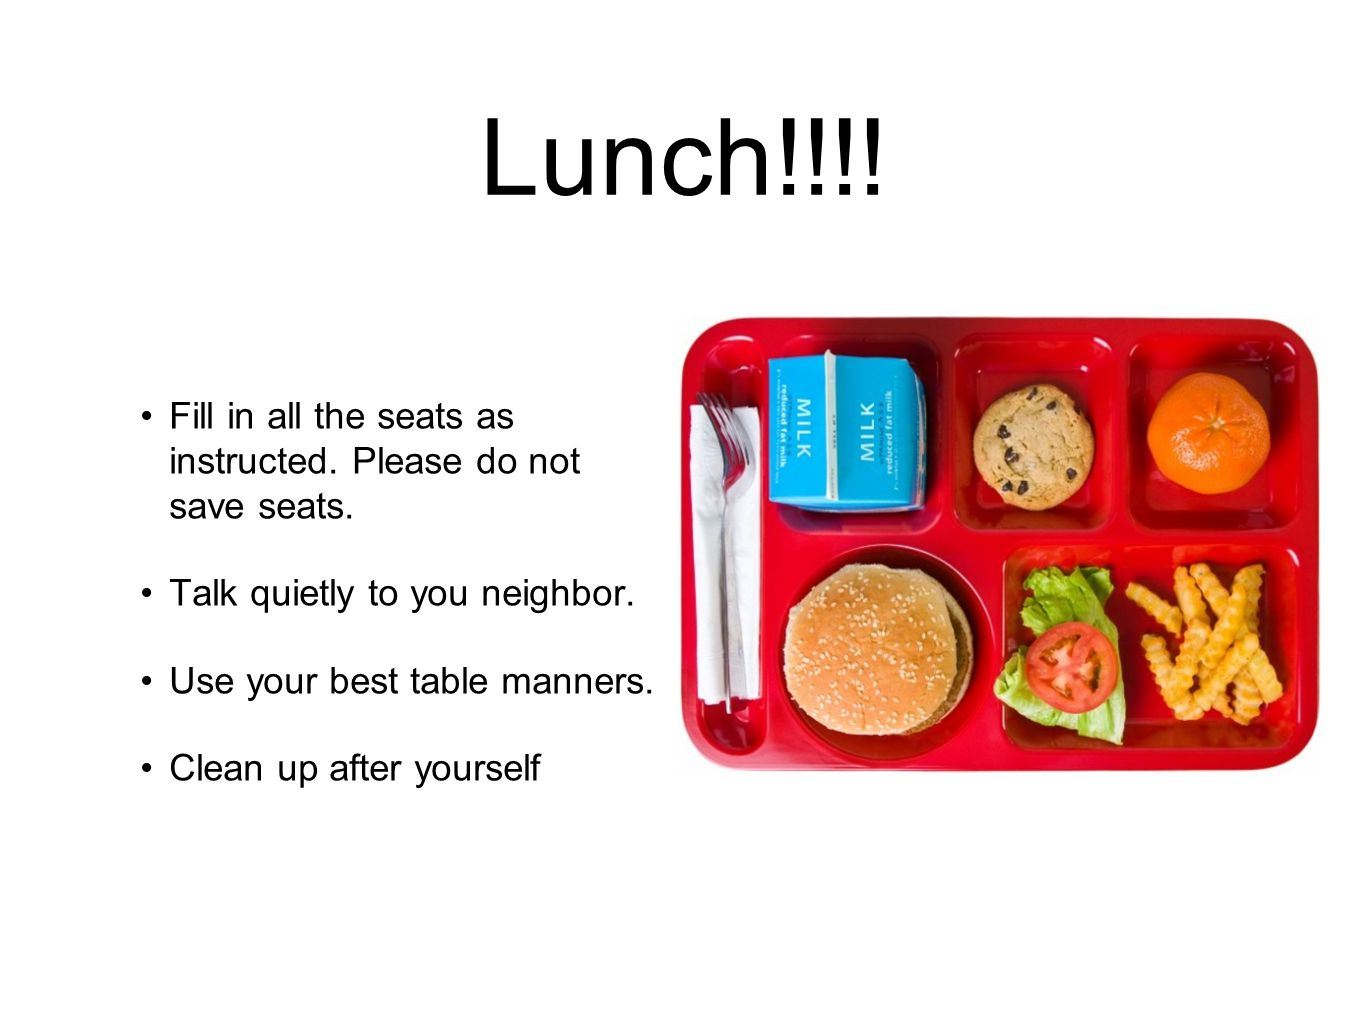 Lunch!!!. Fill in all the seats as instructed. Please do not save seats.